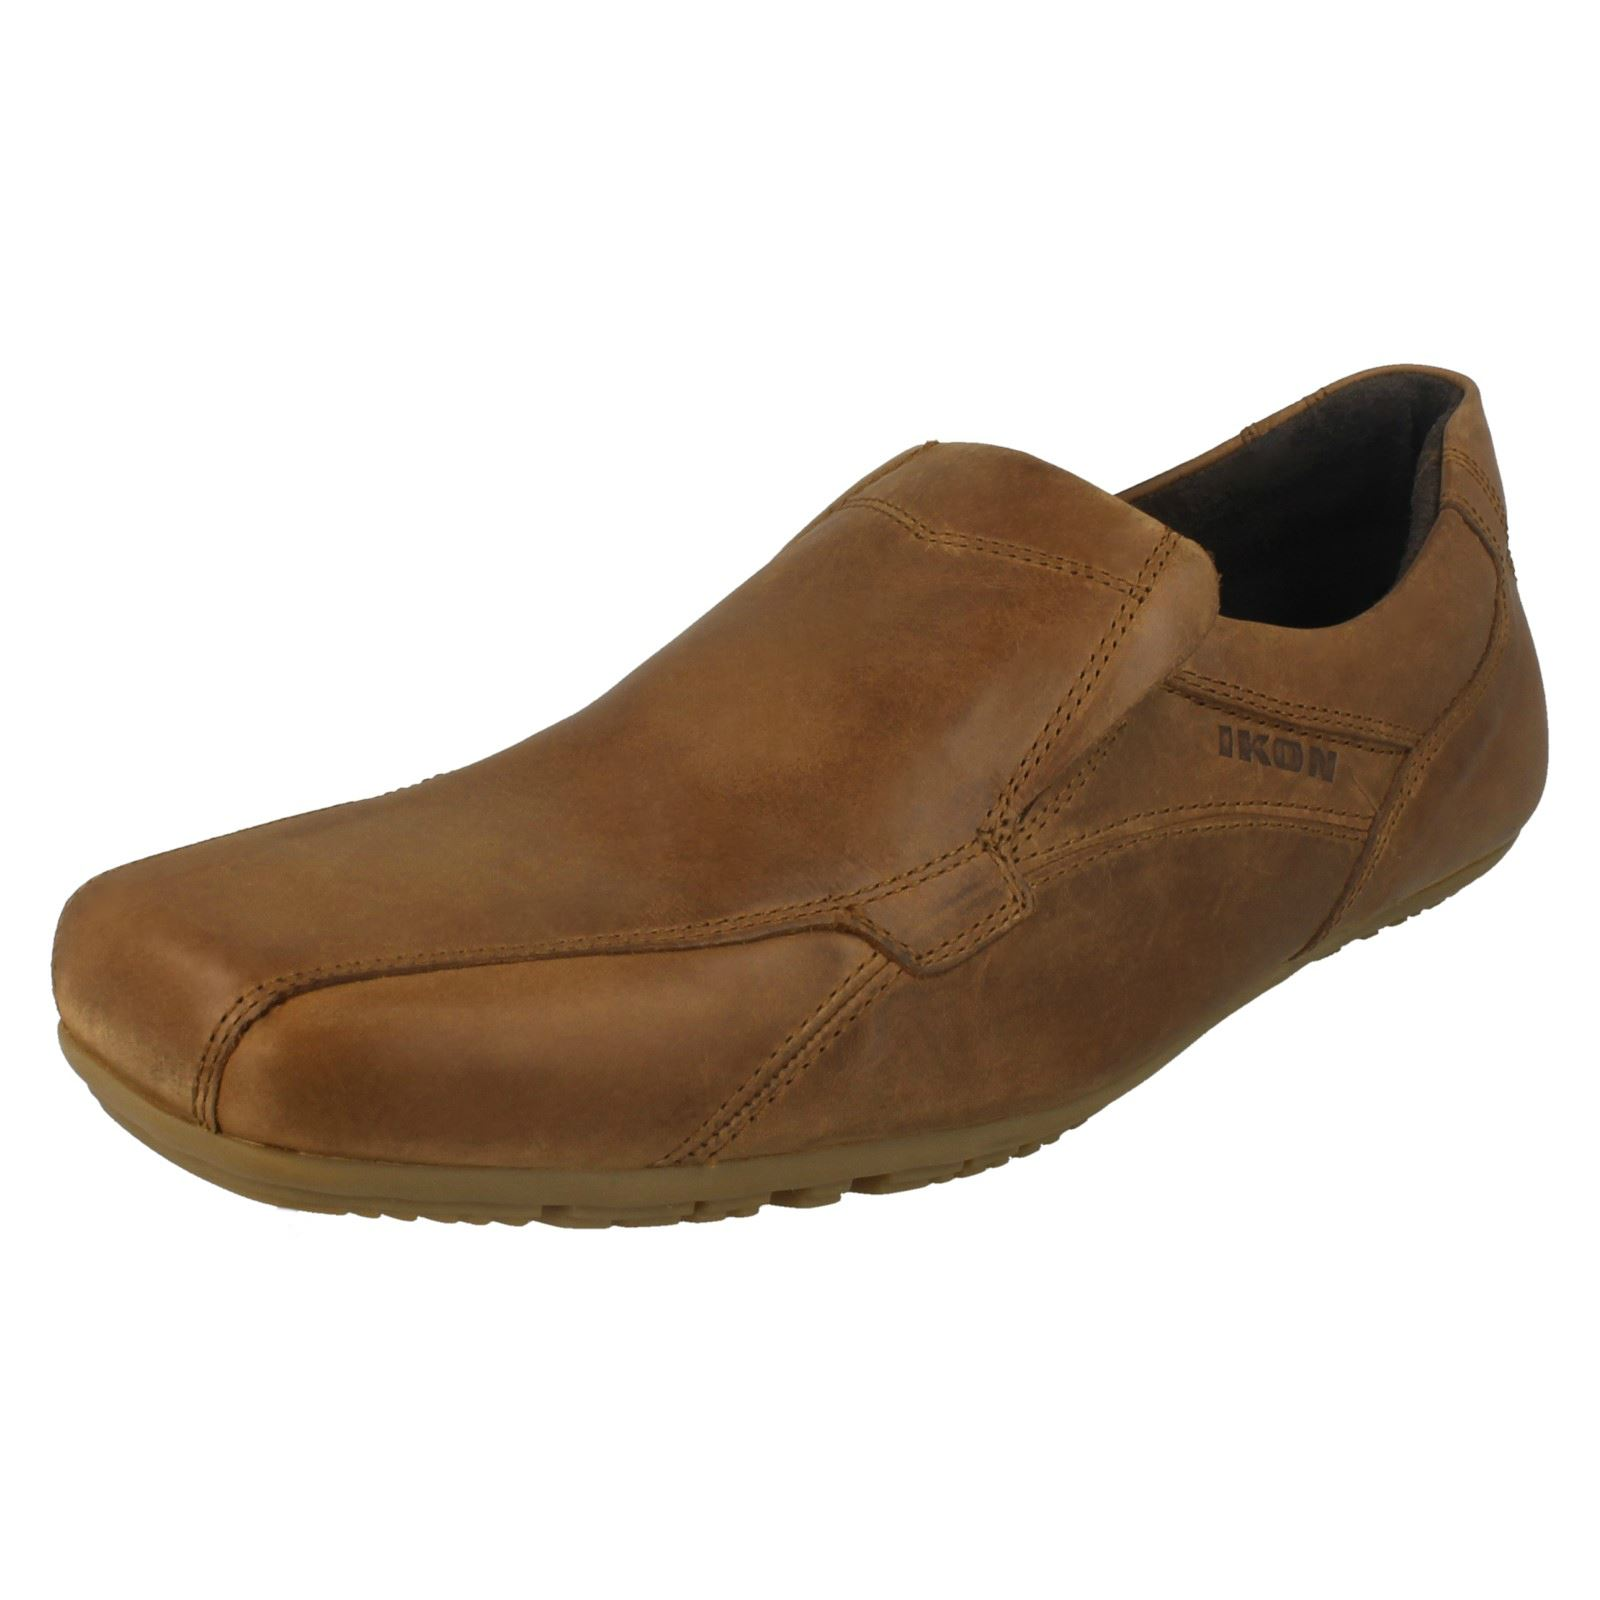 hommes-IKON-Chaussures-Decontractees-A-Enfiler-Fogle